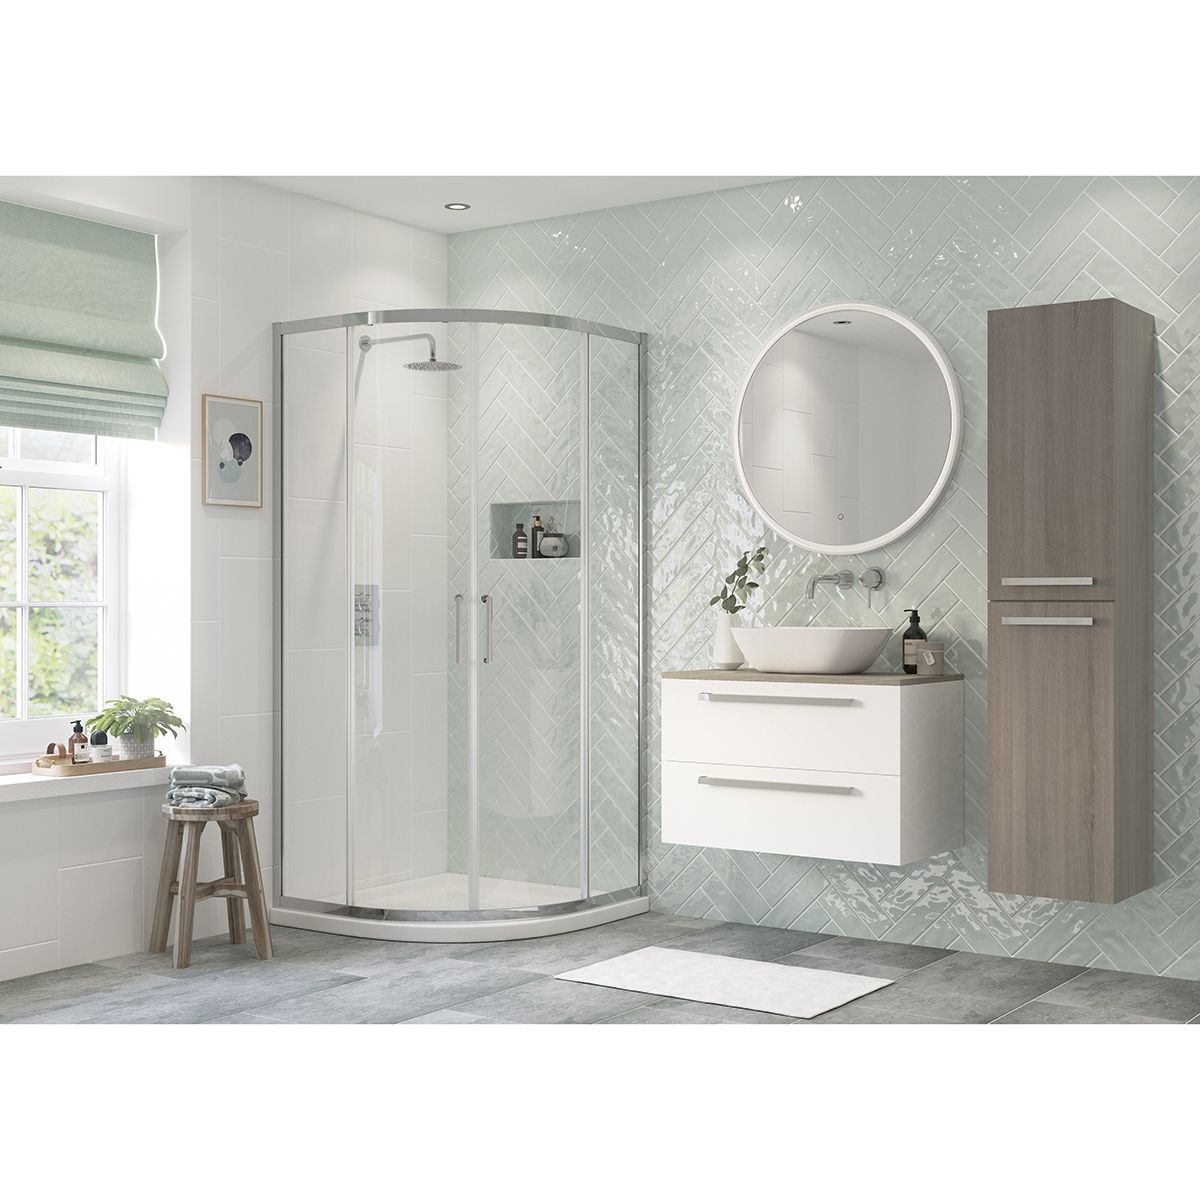 Bathrooms To Love RefleXion Flex 2 Door Quadrant Shower Enclosure